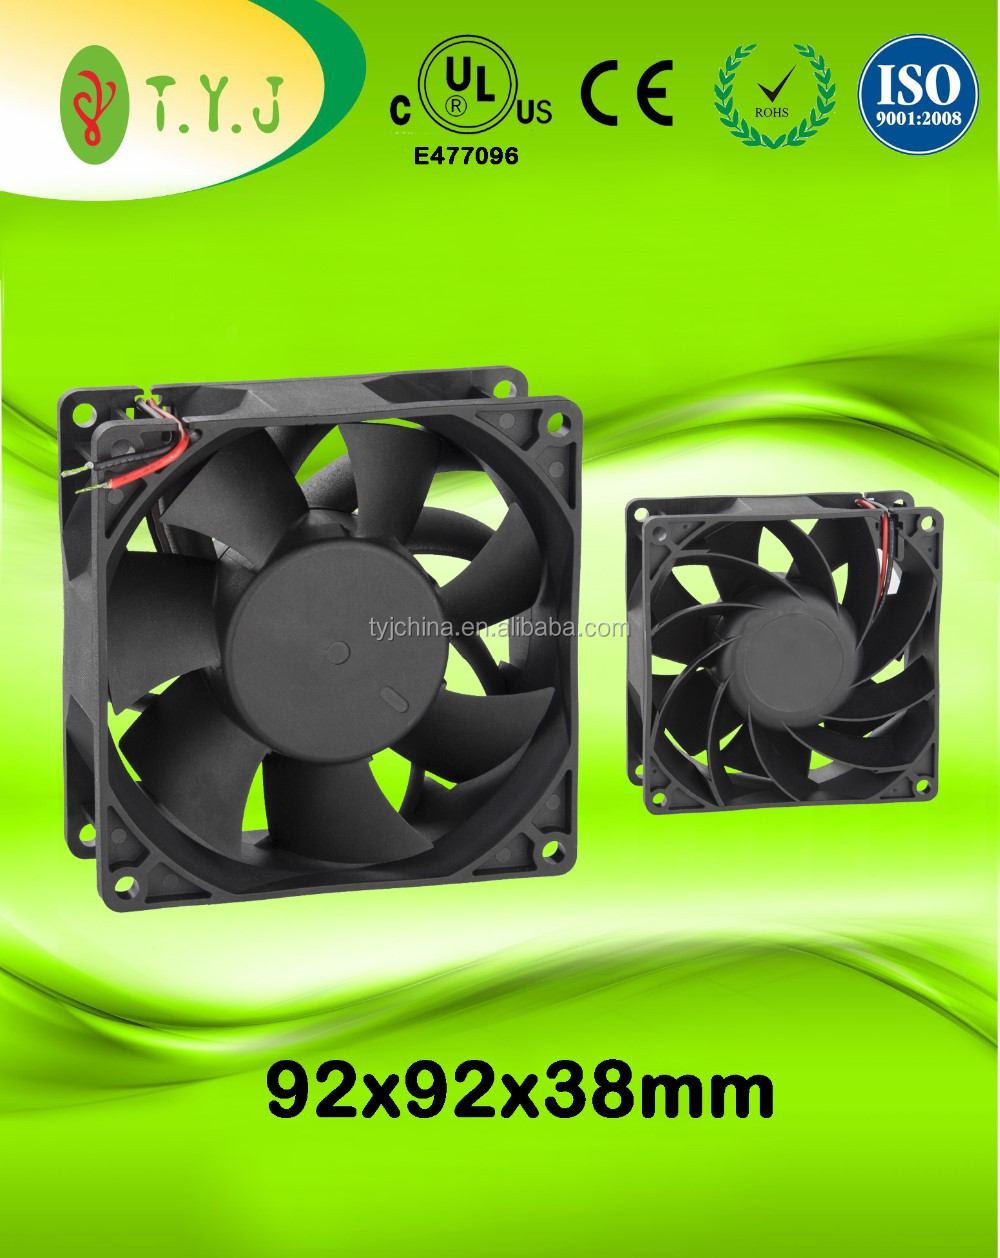 48v 92x92x38mm dc cooling fans with SUPER HIGH air flow and pressure